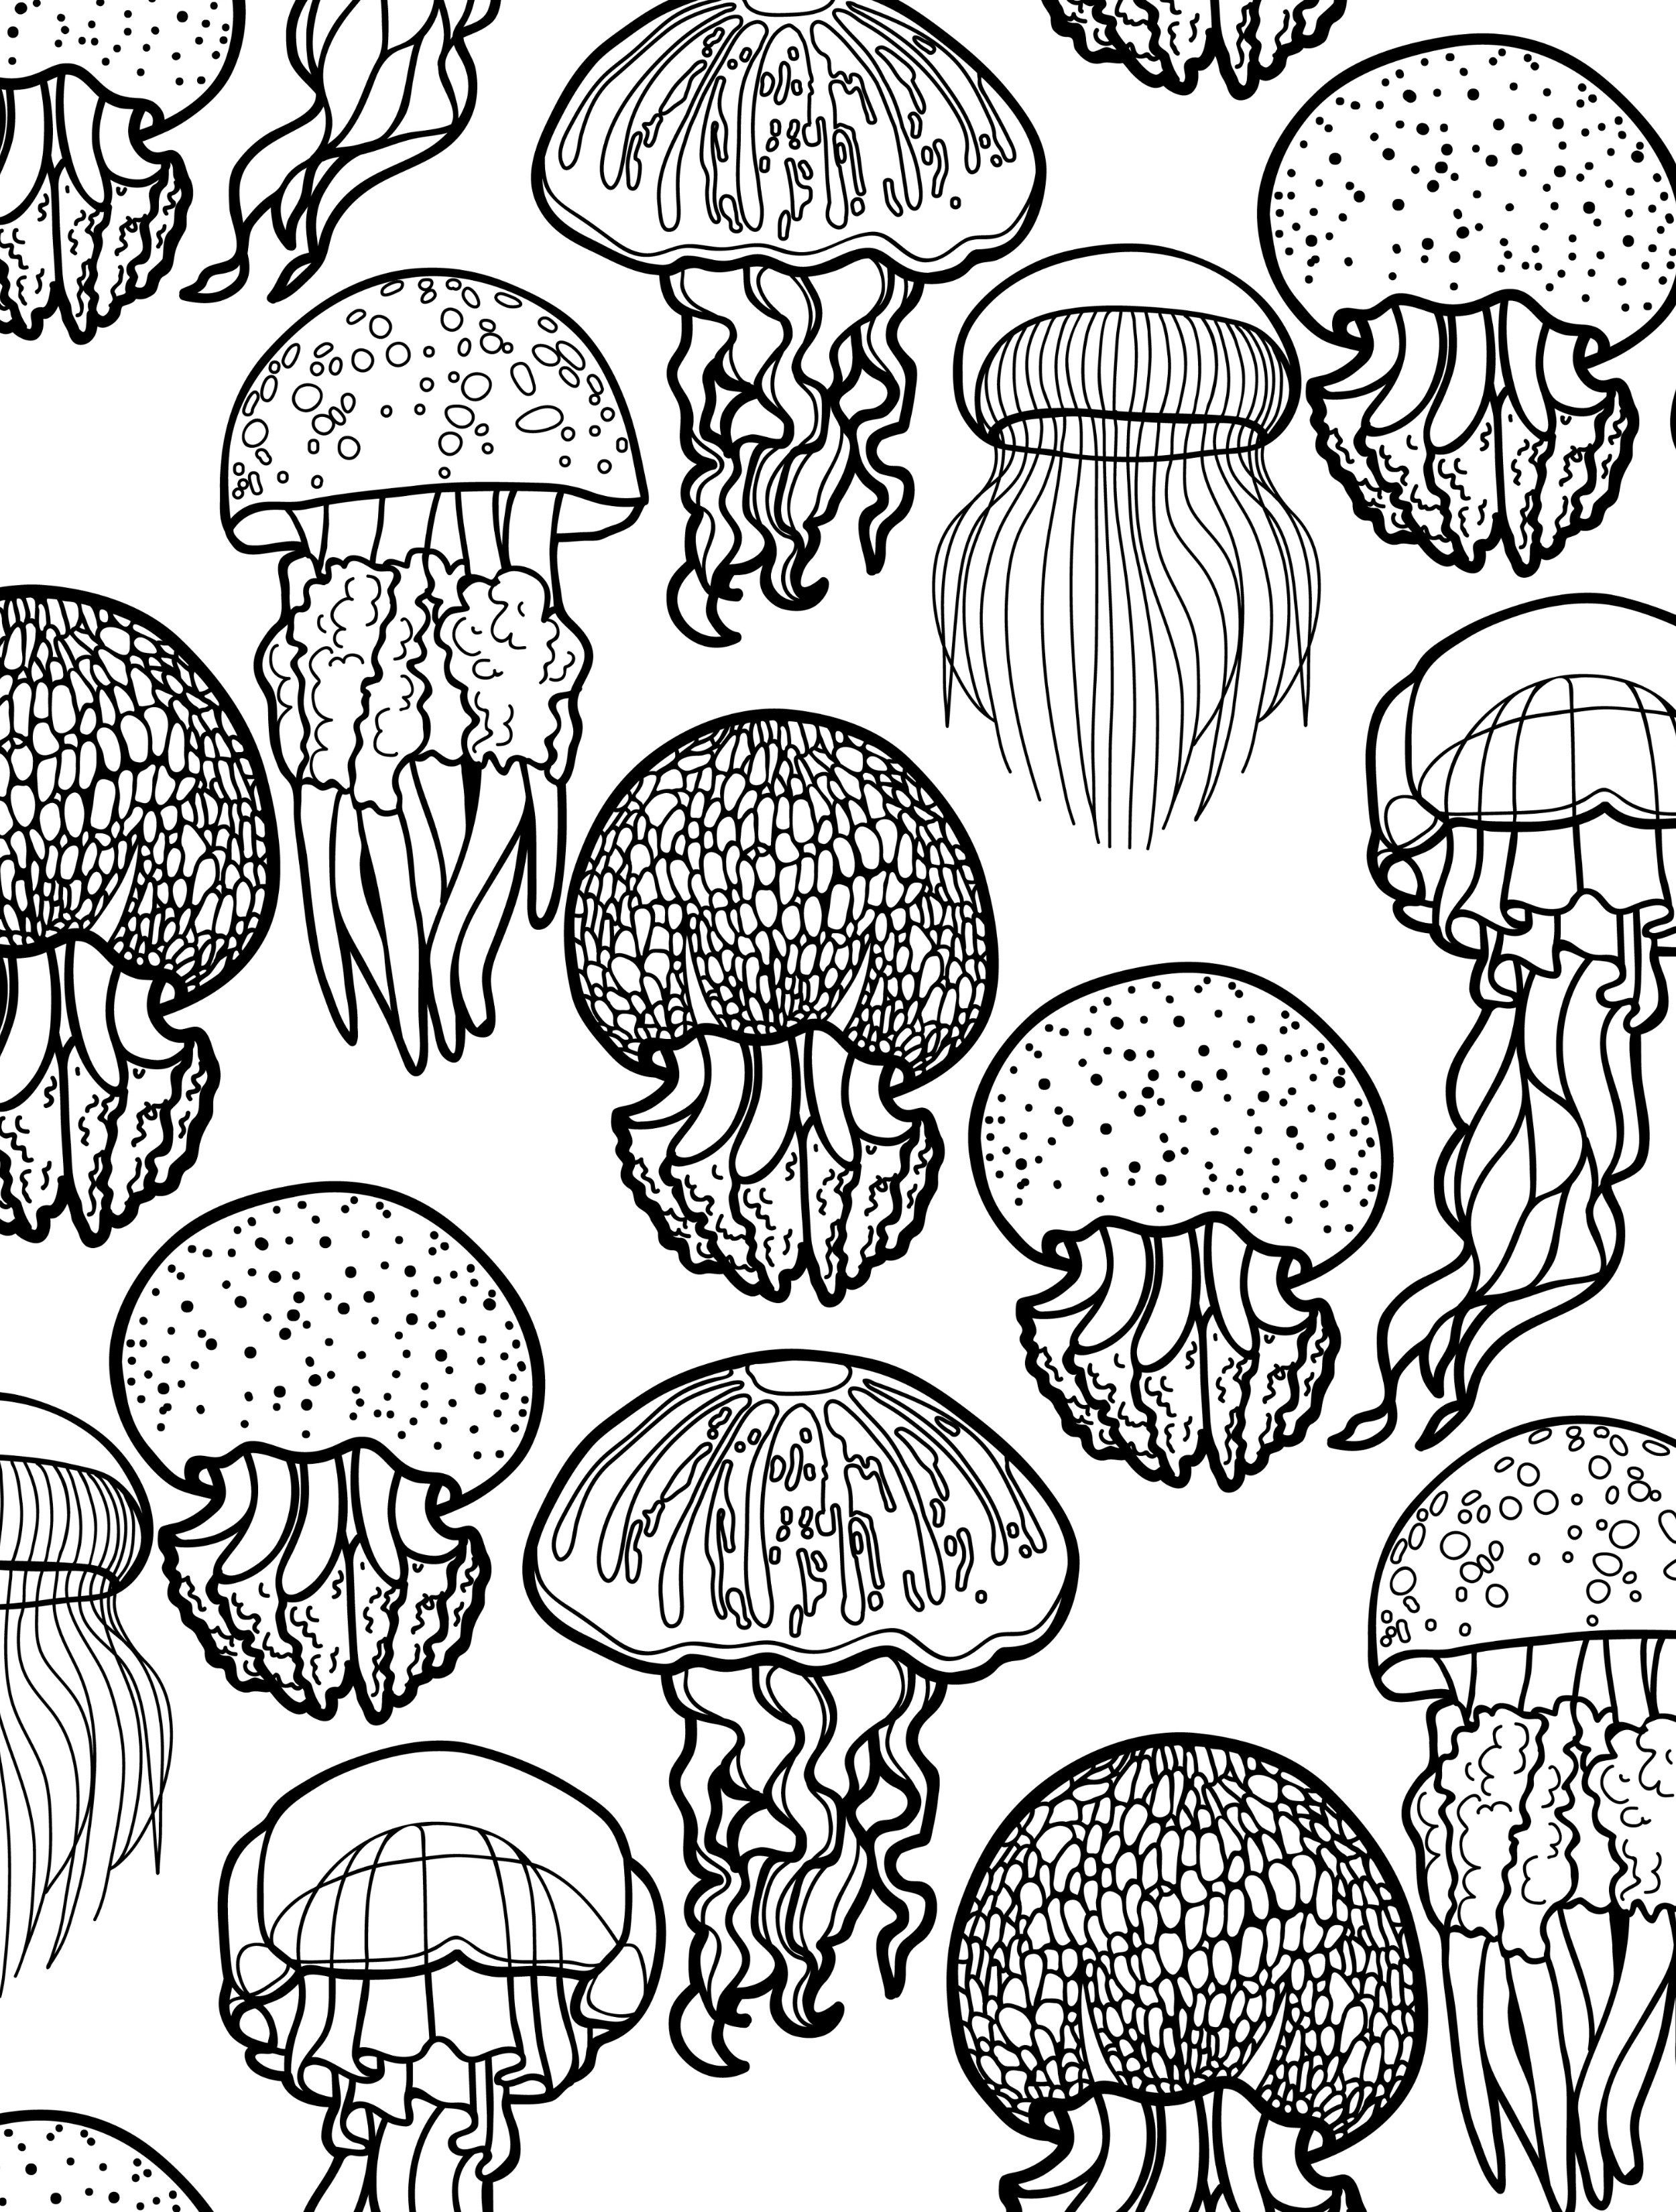 23 Free Printable Insect Animal Adult Coloring Pages Картинки